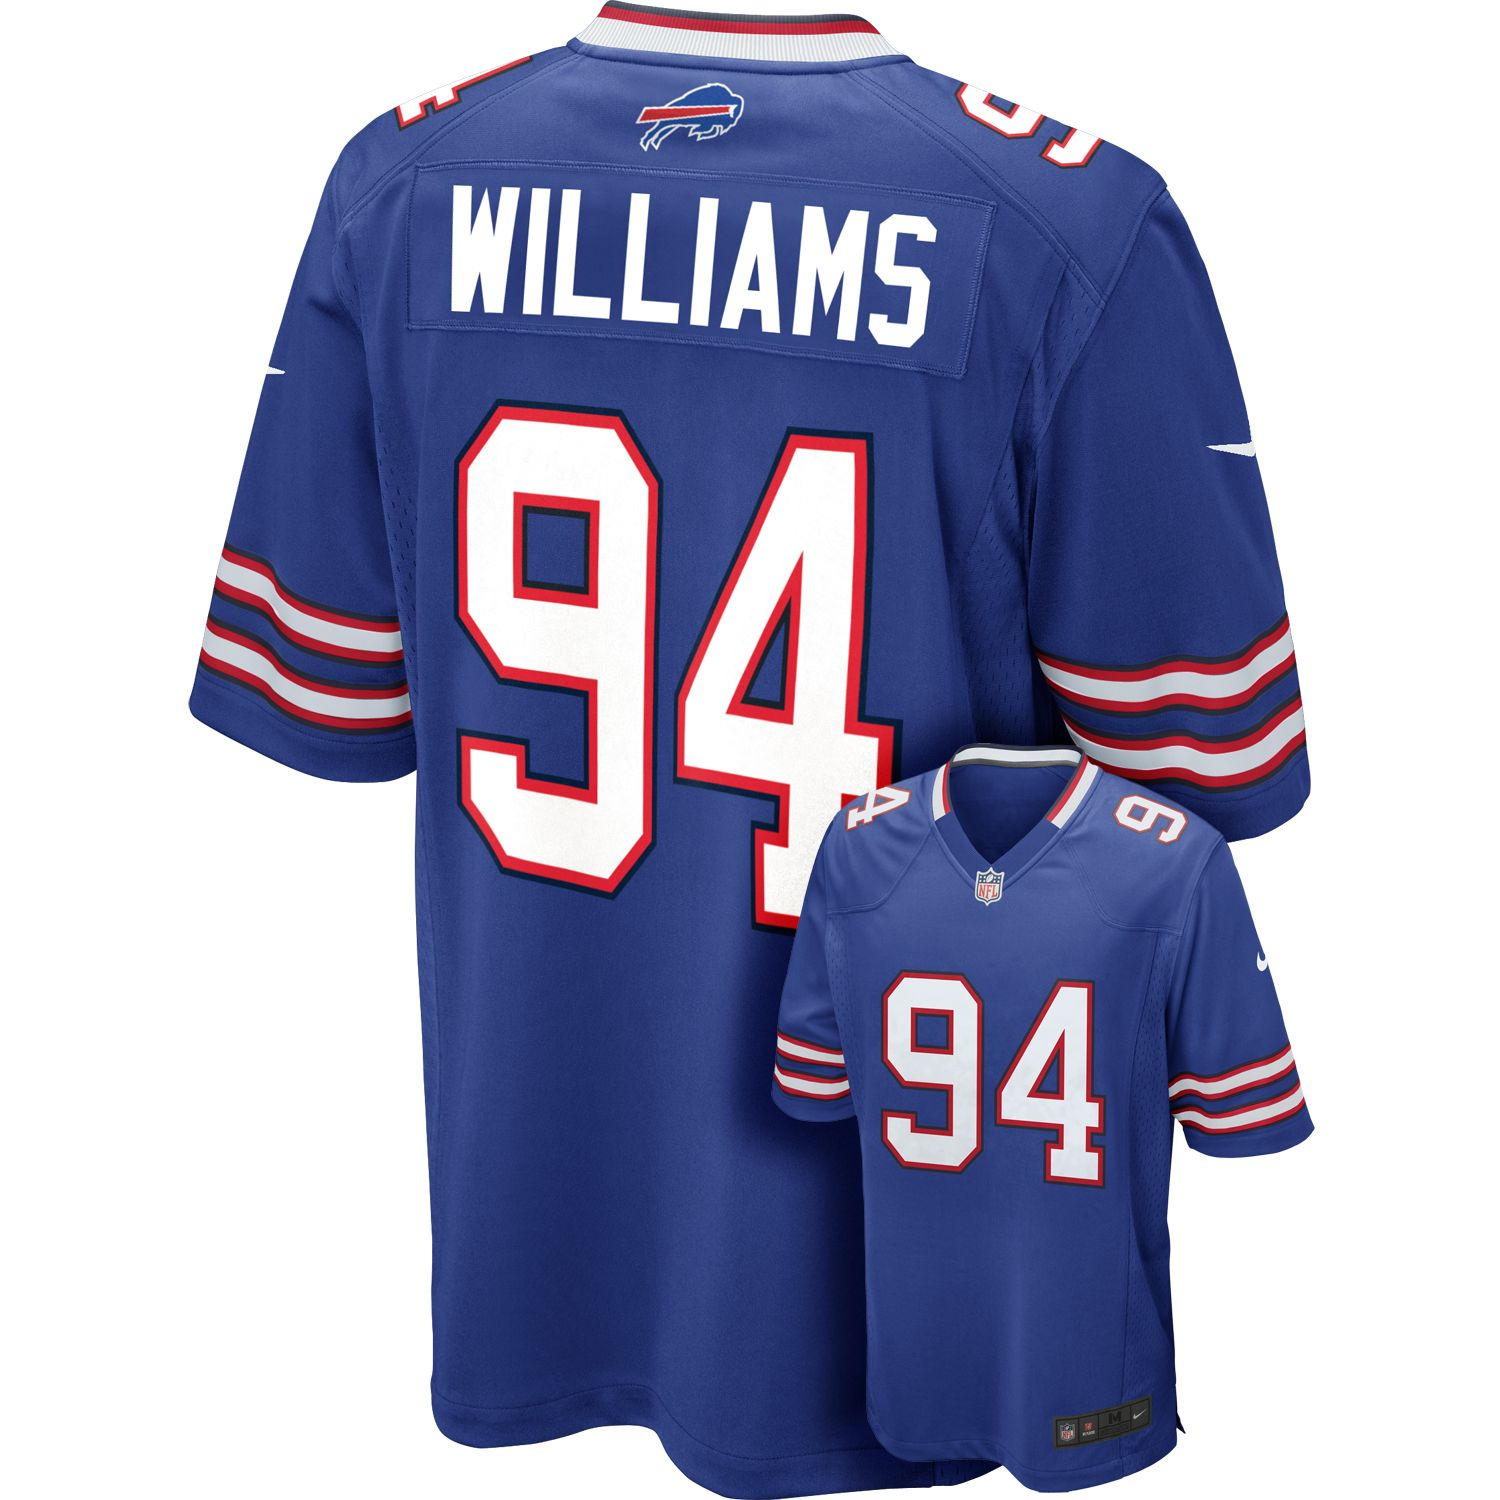 Mario Williams Game NFL Replica Jersey